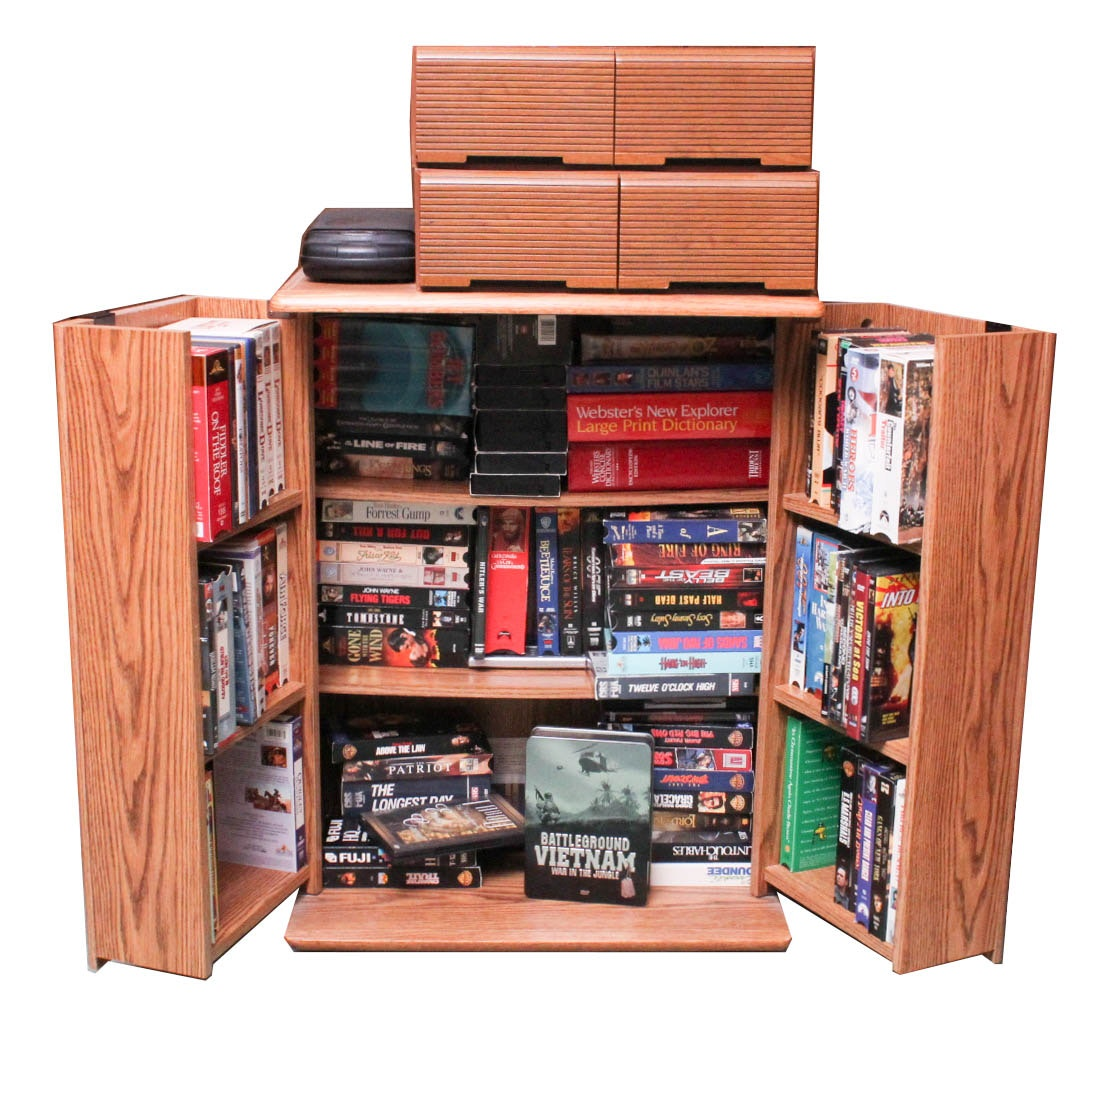 Amazing Wood Veneer Storage Cabinet Stocked With VHS And DVDs ...